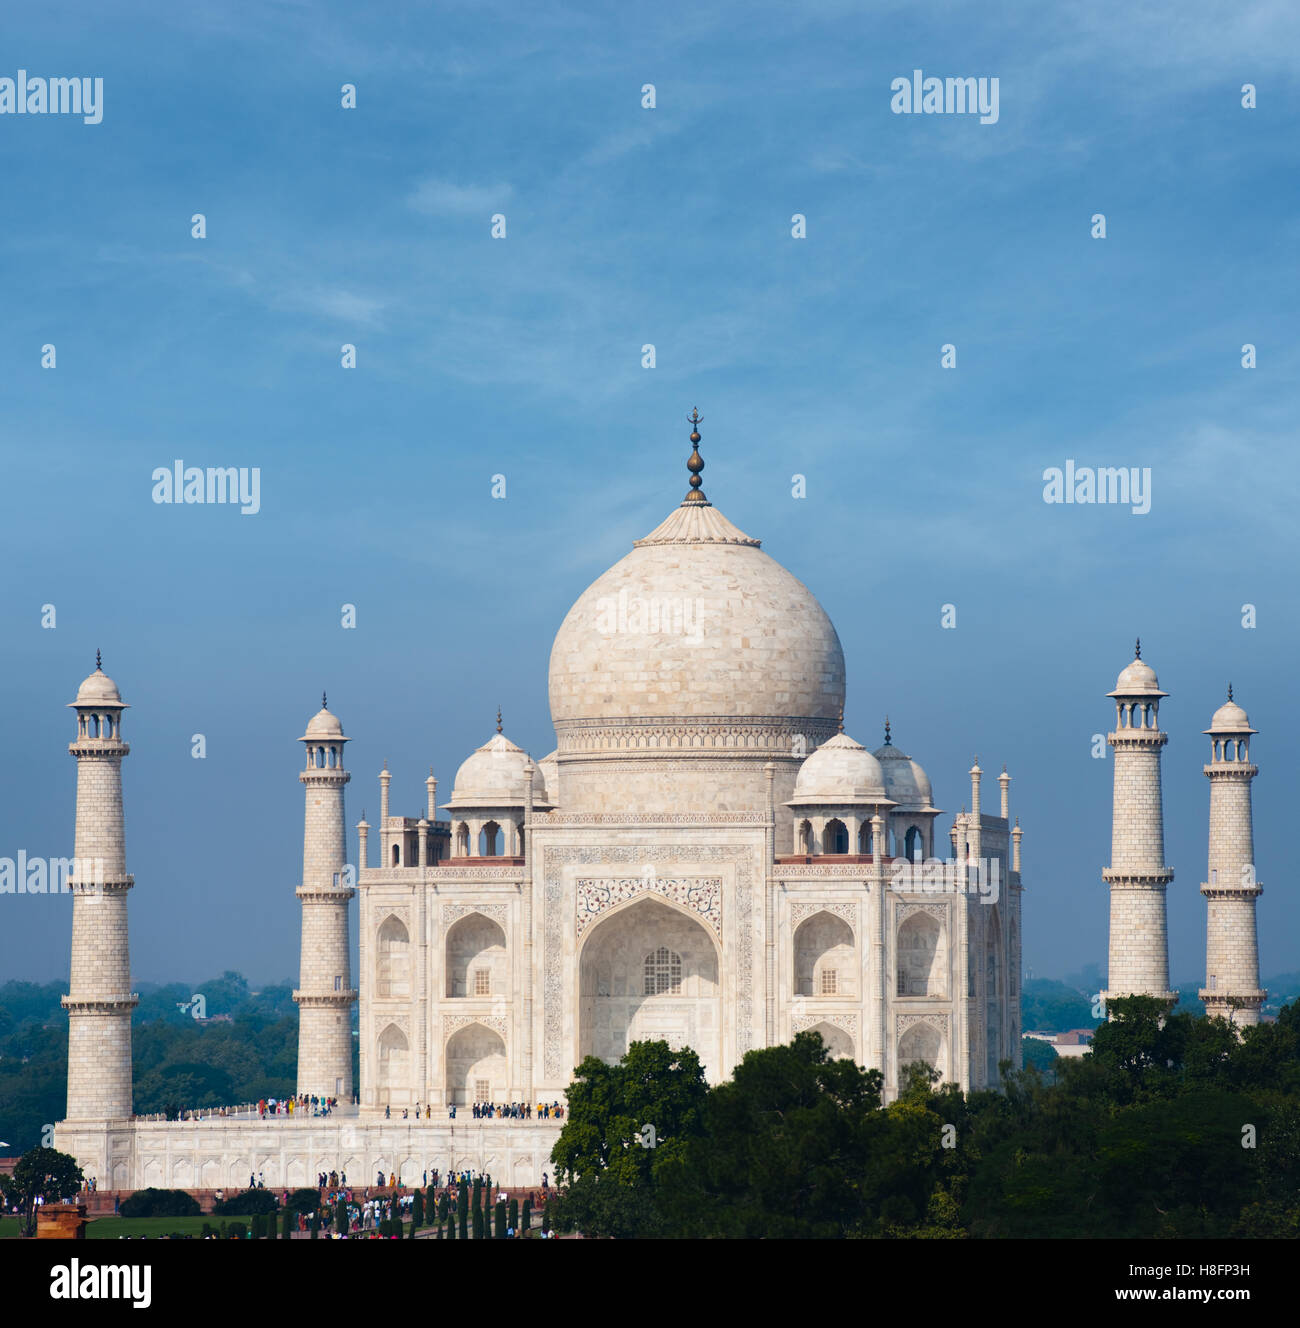 Distant telephoto view of sun shining brightly on white marble of the Taj Mahal from outside the grounds at daytime - Stock Image